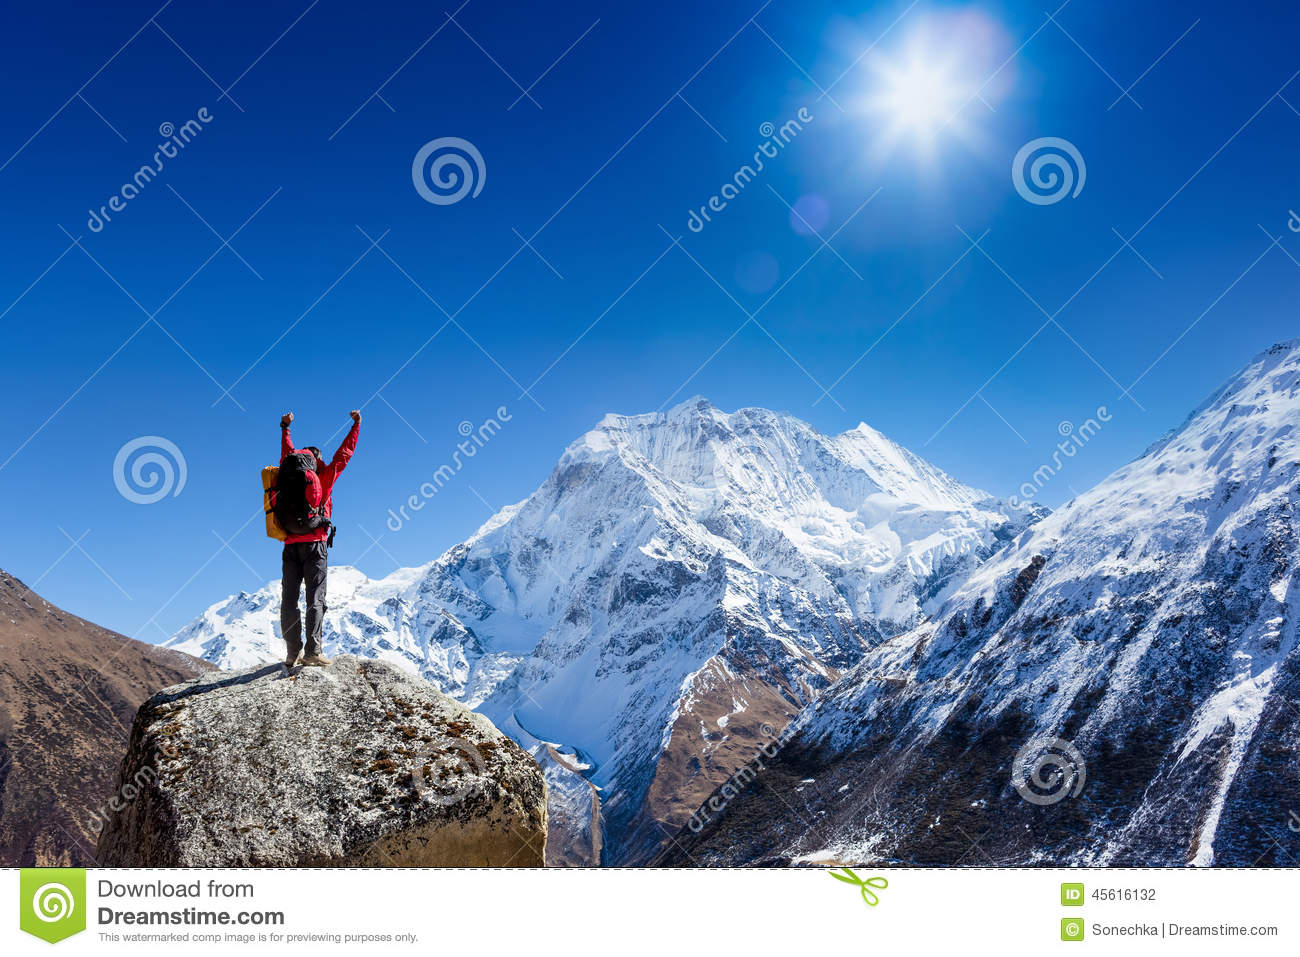 Hiker cheering elated and blissful with arms raised in the sky after hiking to mountain top summit